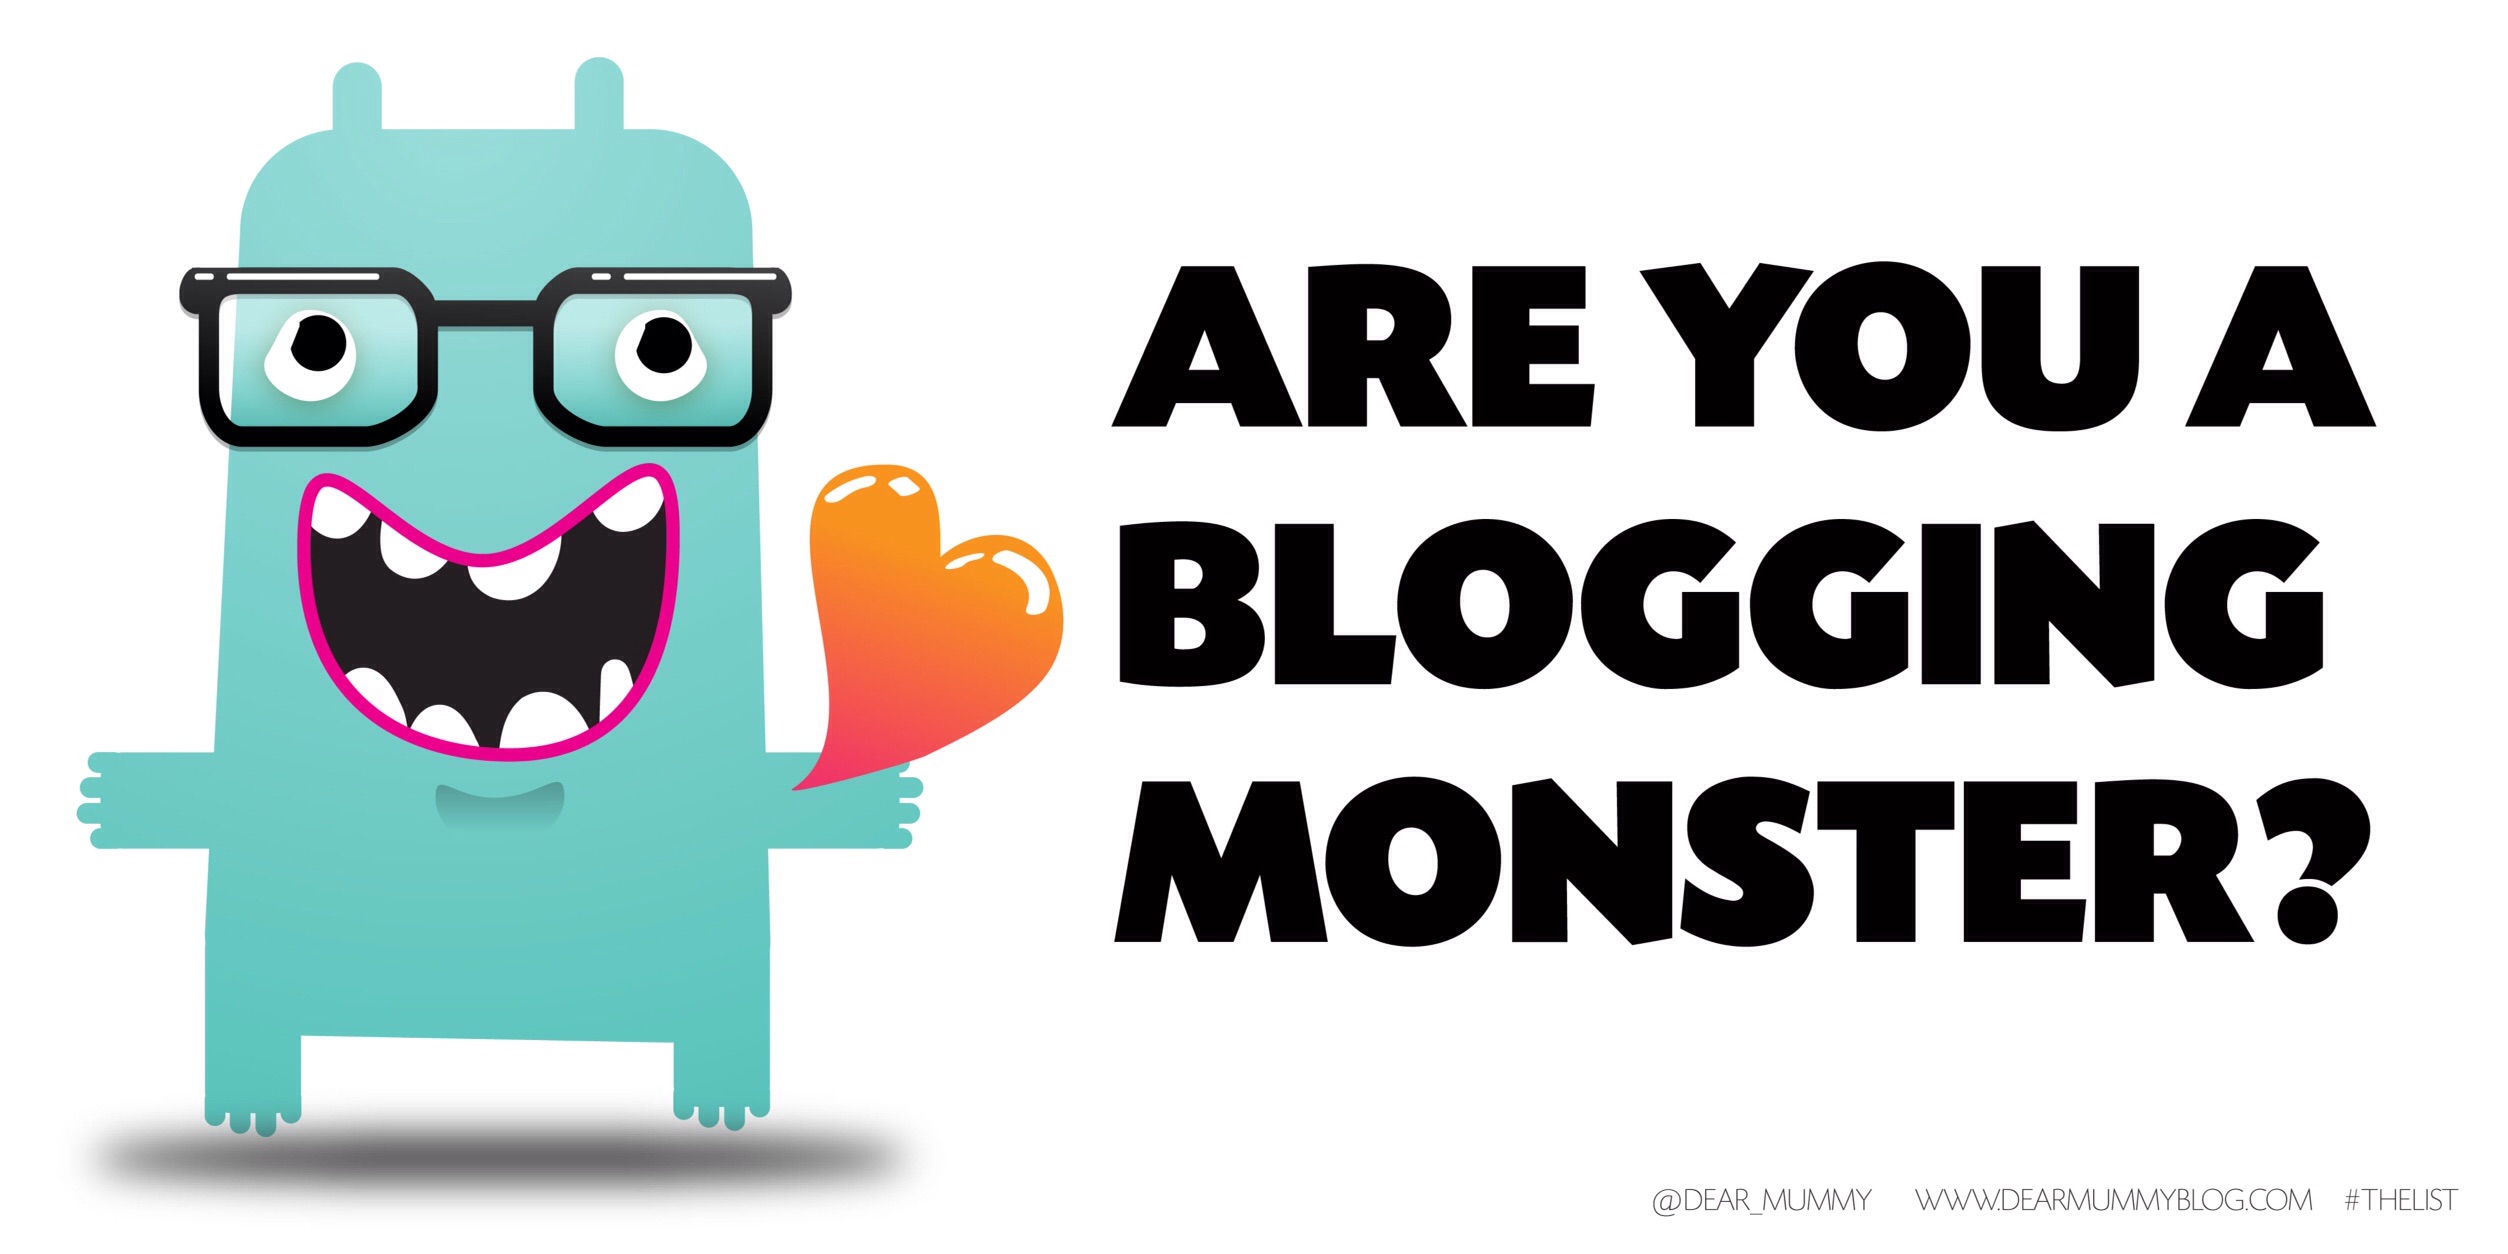 Are you a blogging monster?